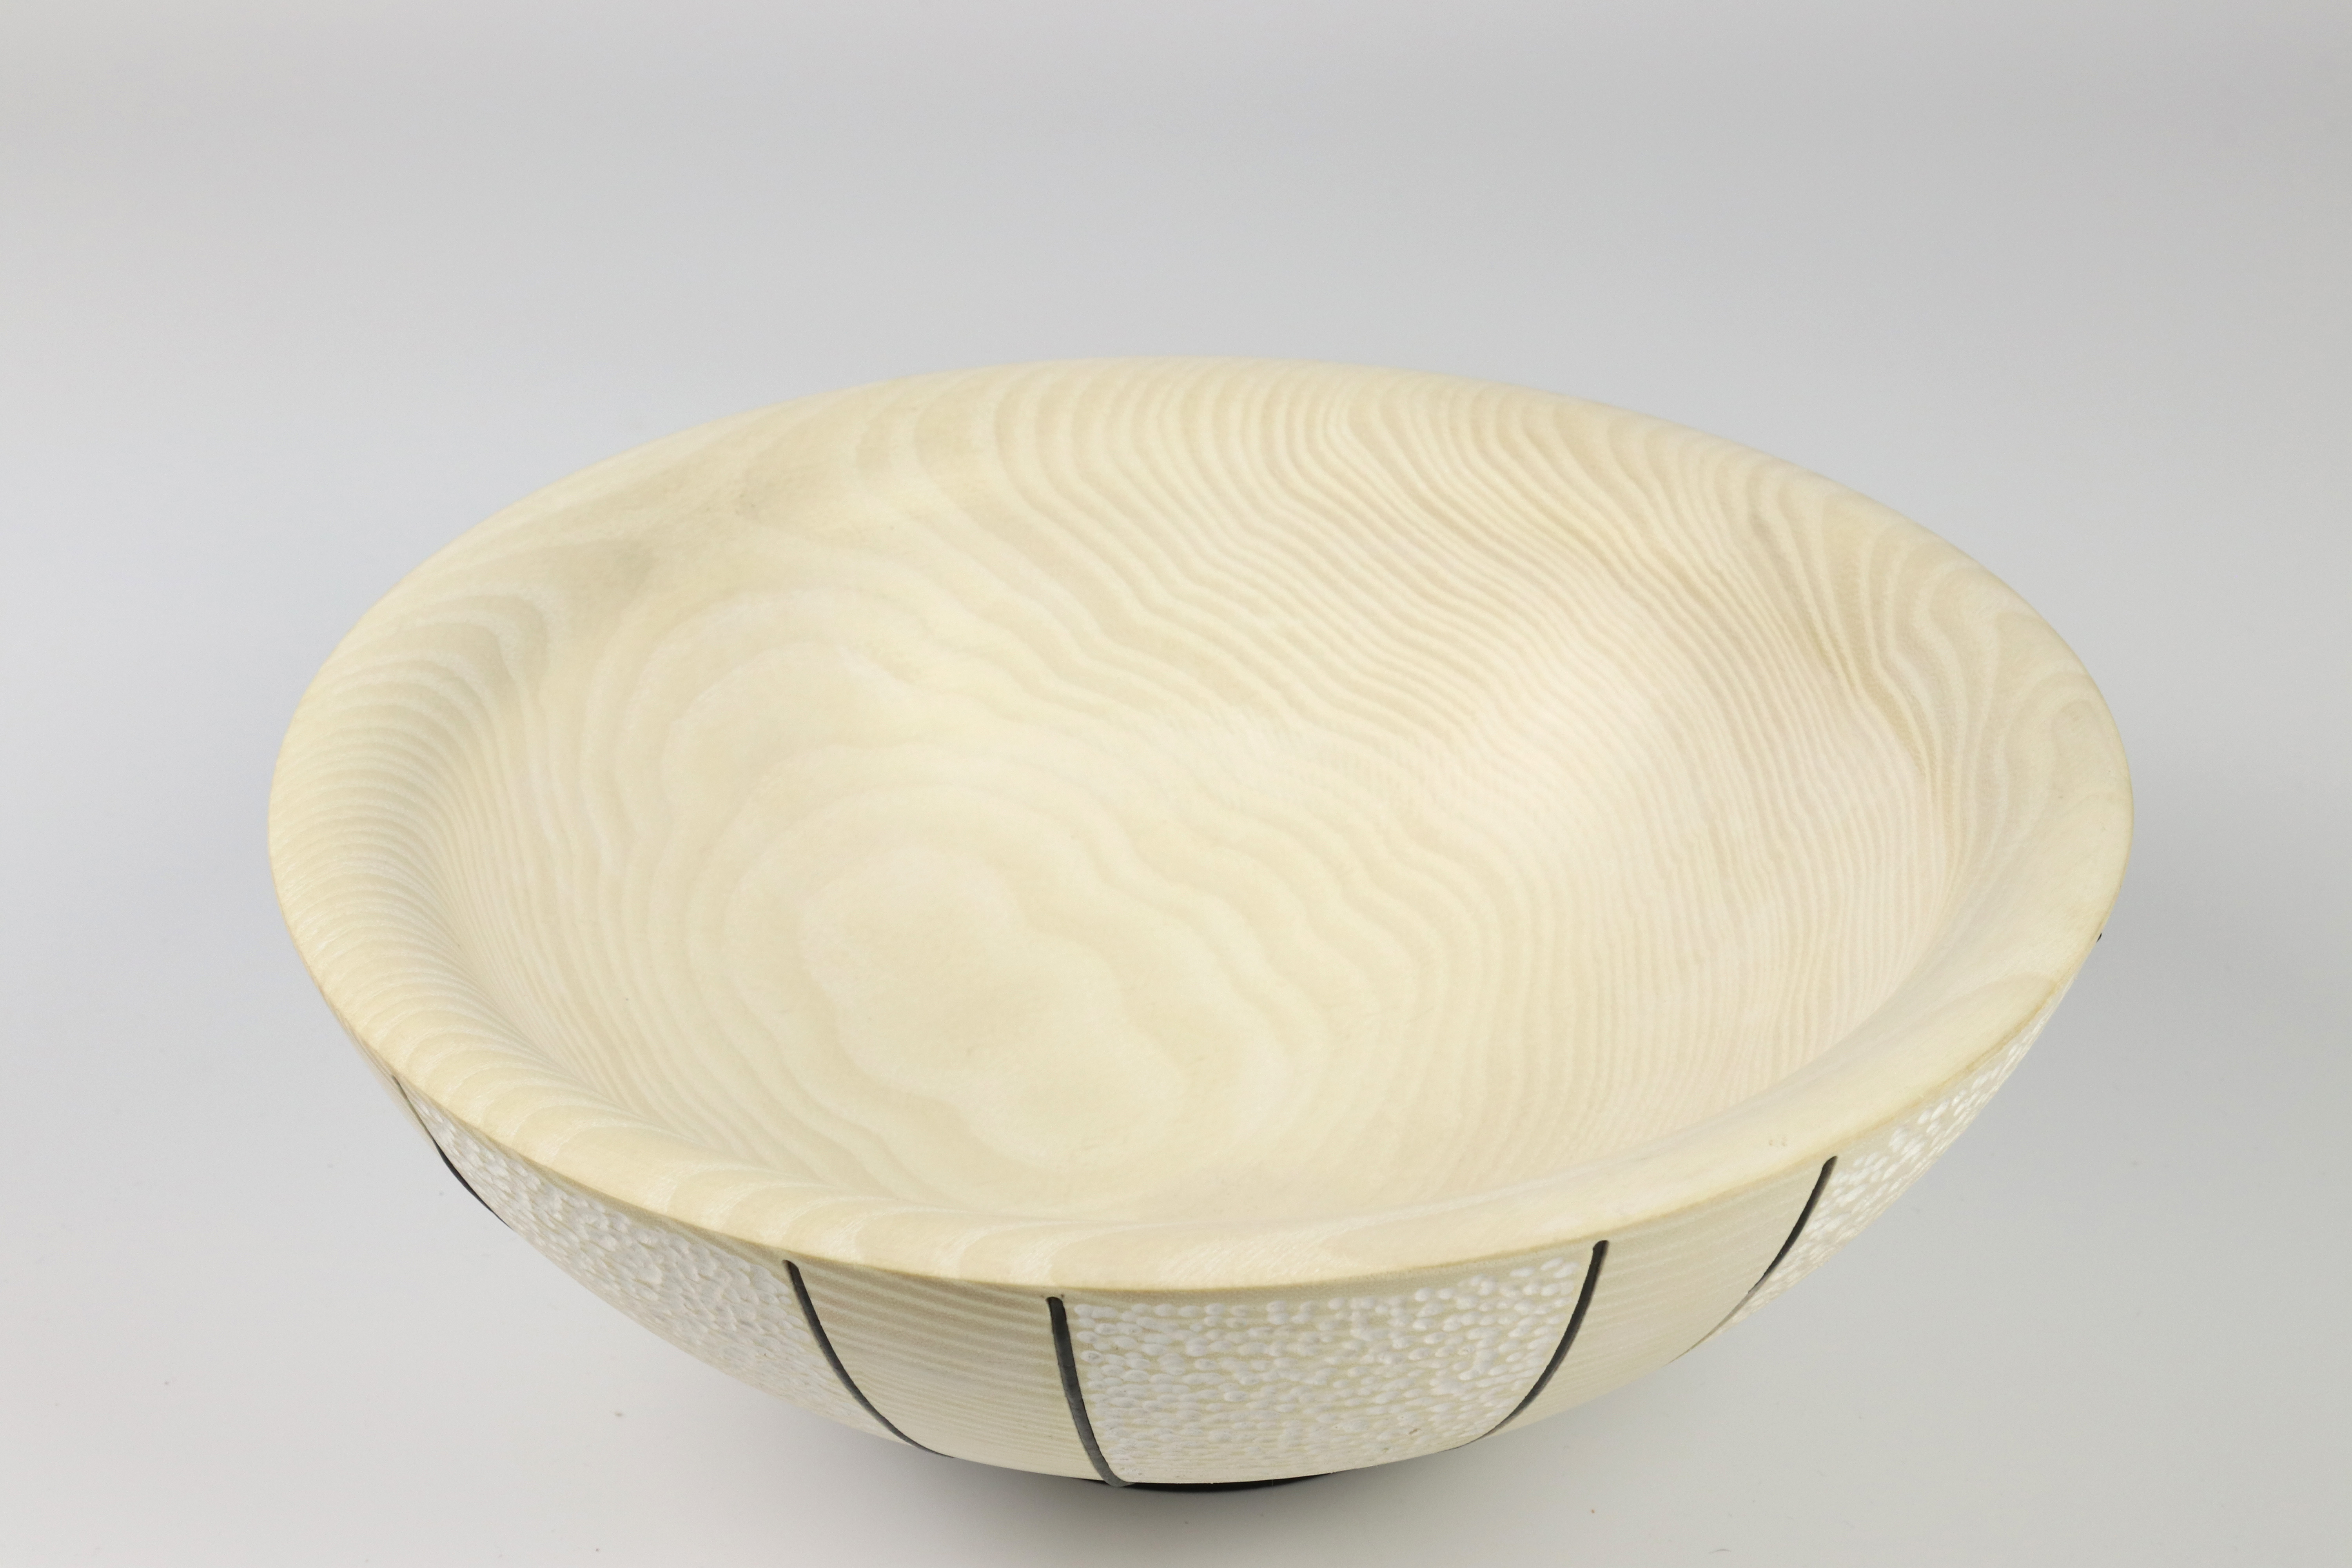 Lot 117 - Trevor Lucky (UK) textured and bleached/coloured ash bowl 10x25cm. Signed